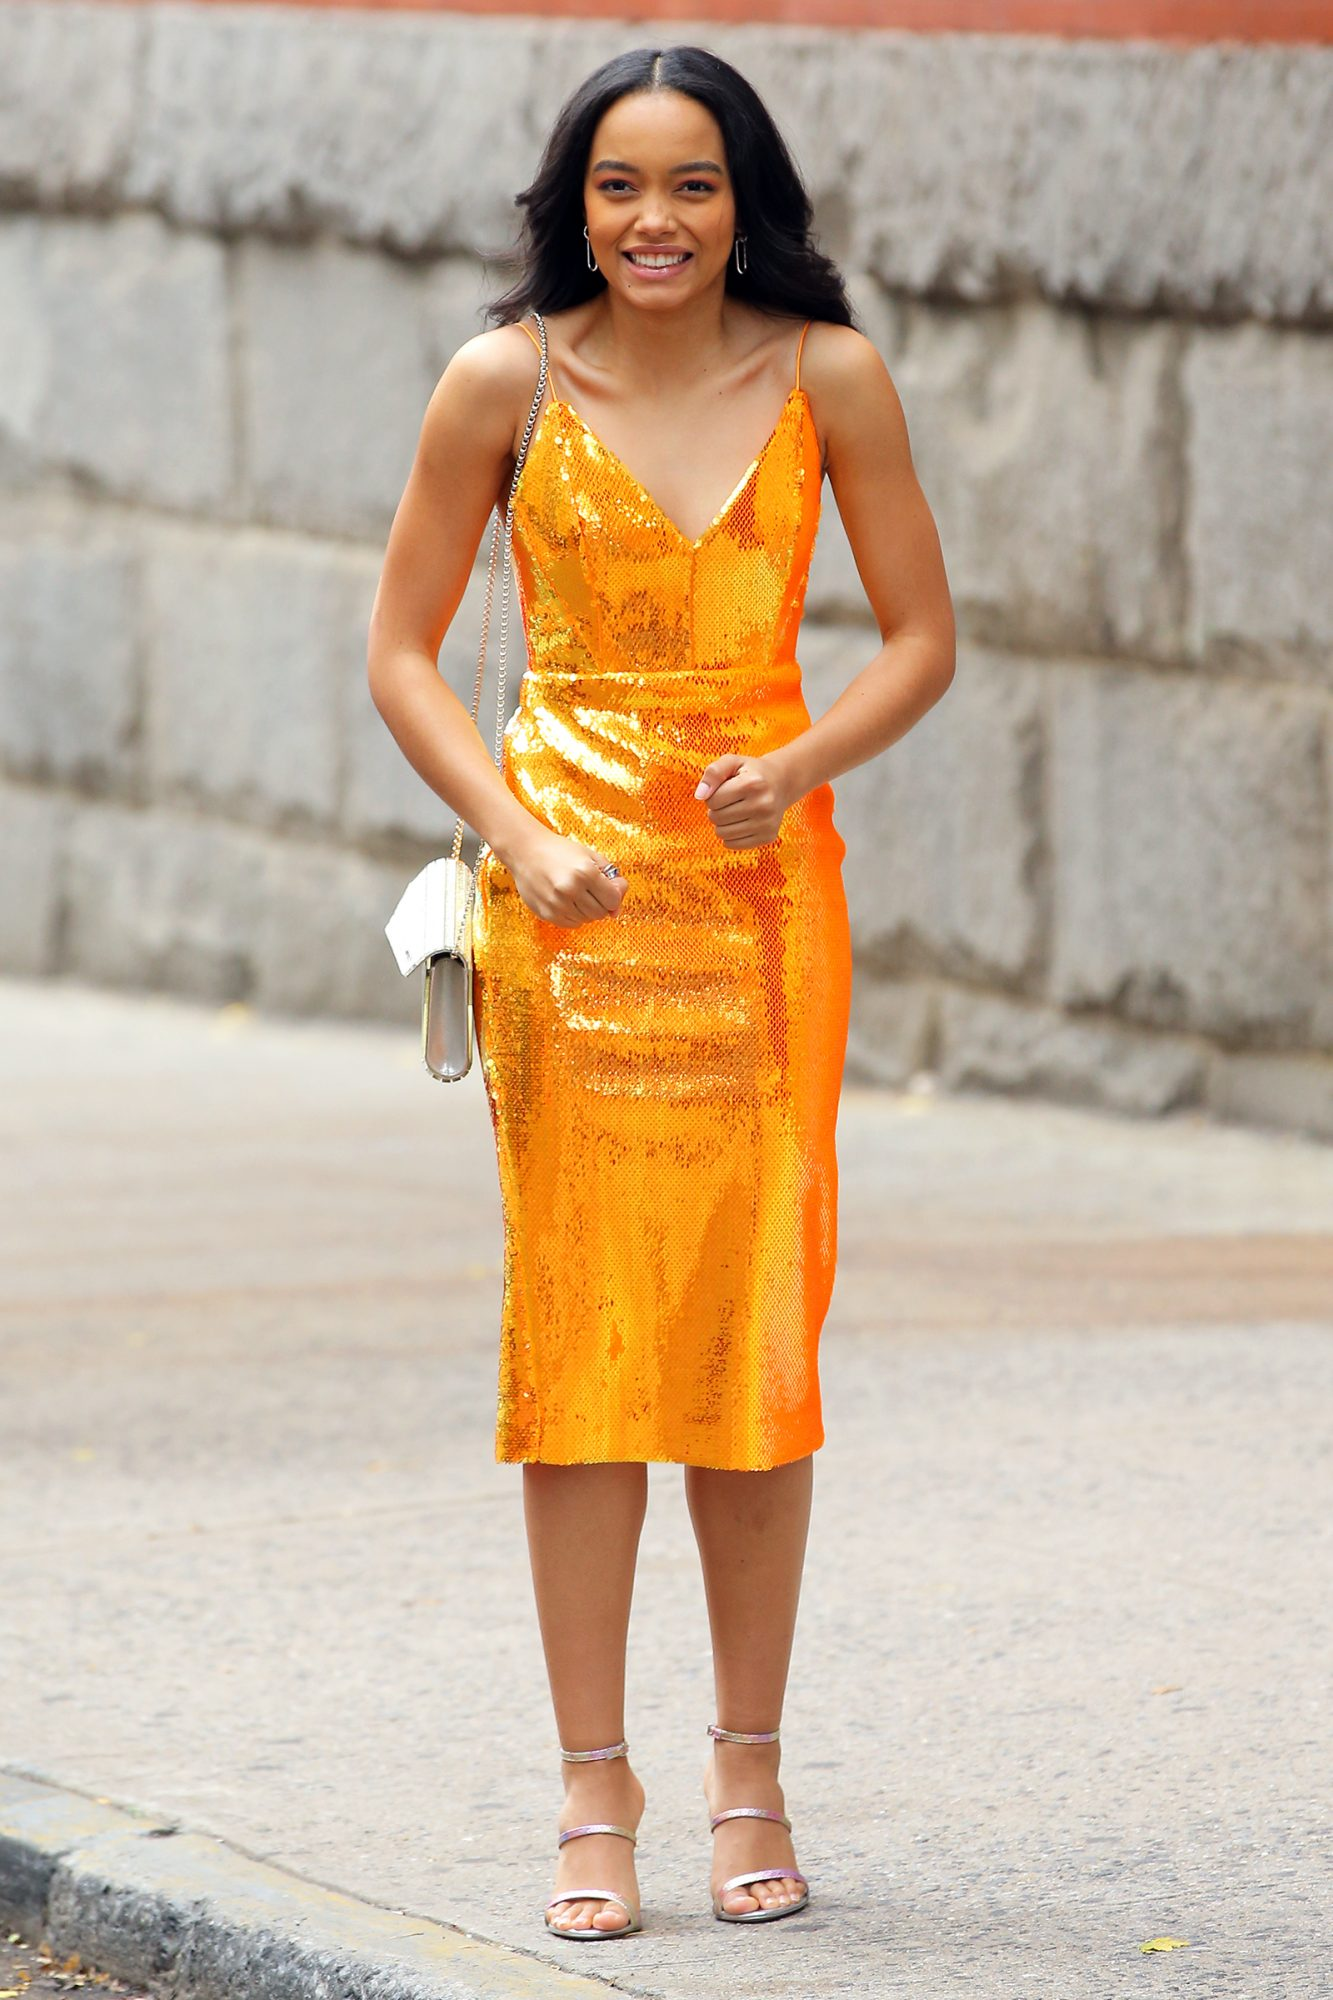 Actress Whitney Peak wears an orange sparkly cocktail dress filming 'Gossip Girl at Park Avenue Armory in New York City